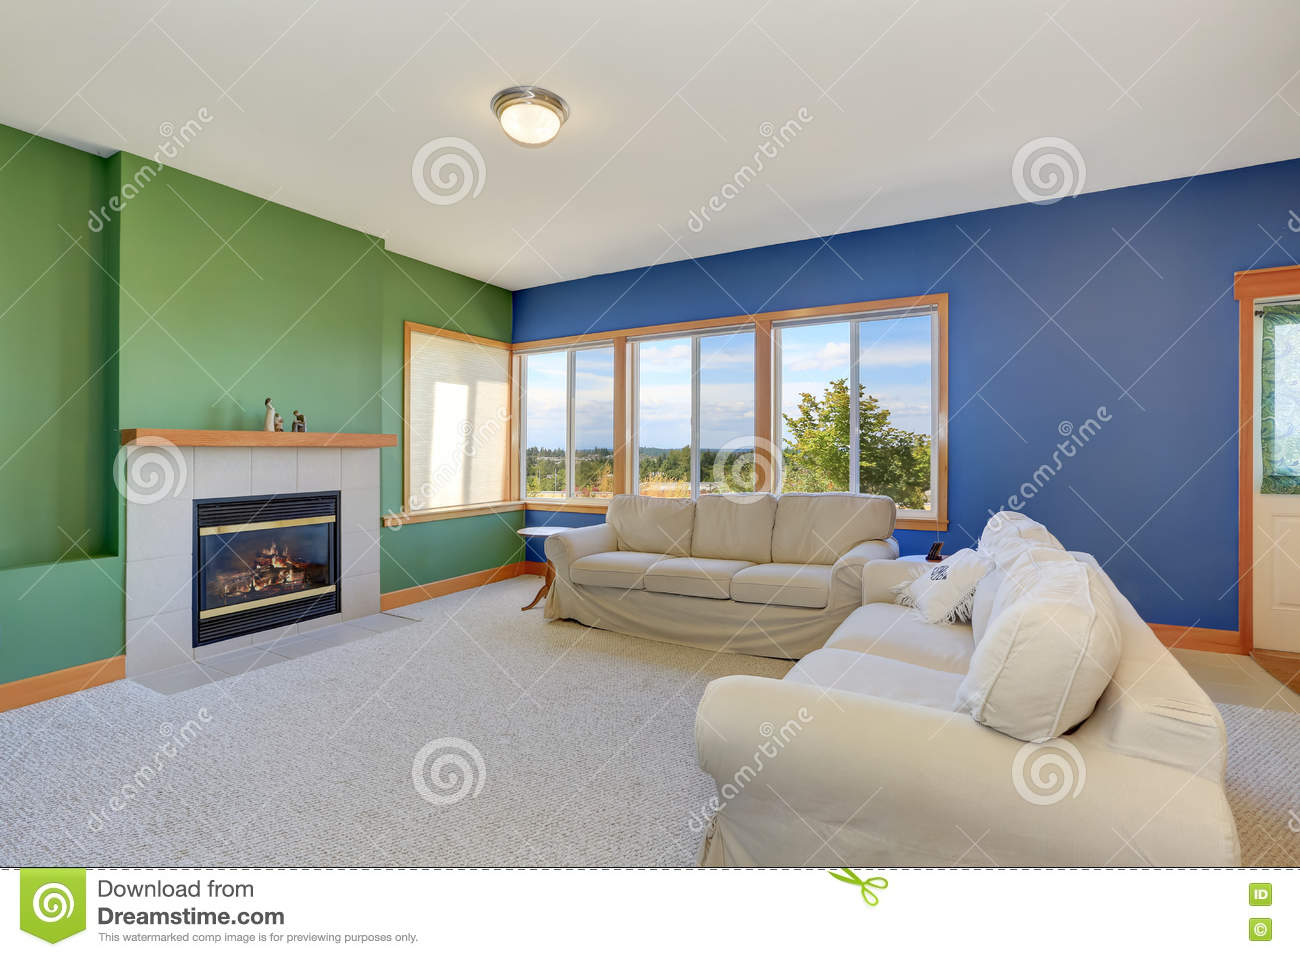 Typical american living room design stock photo image for Living room designs usa